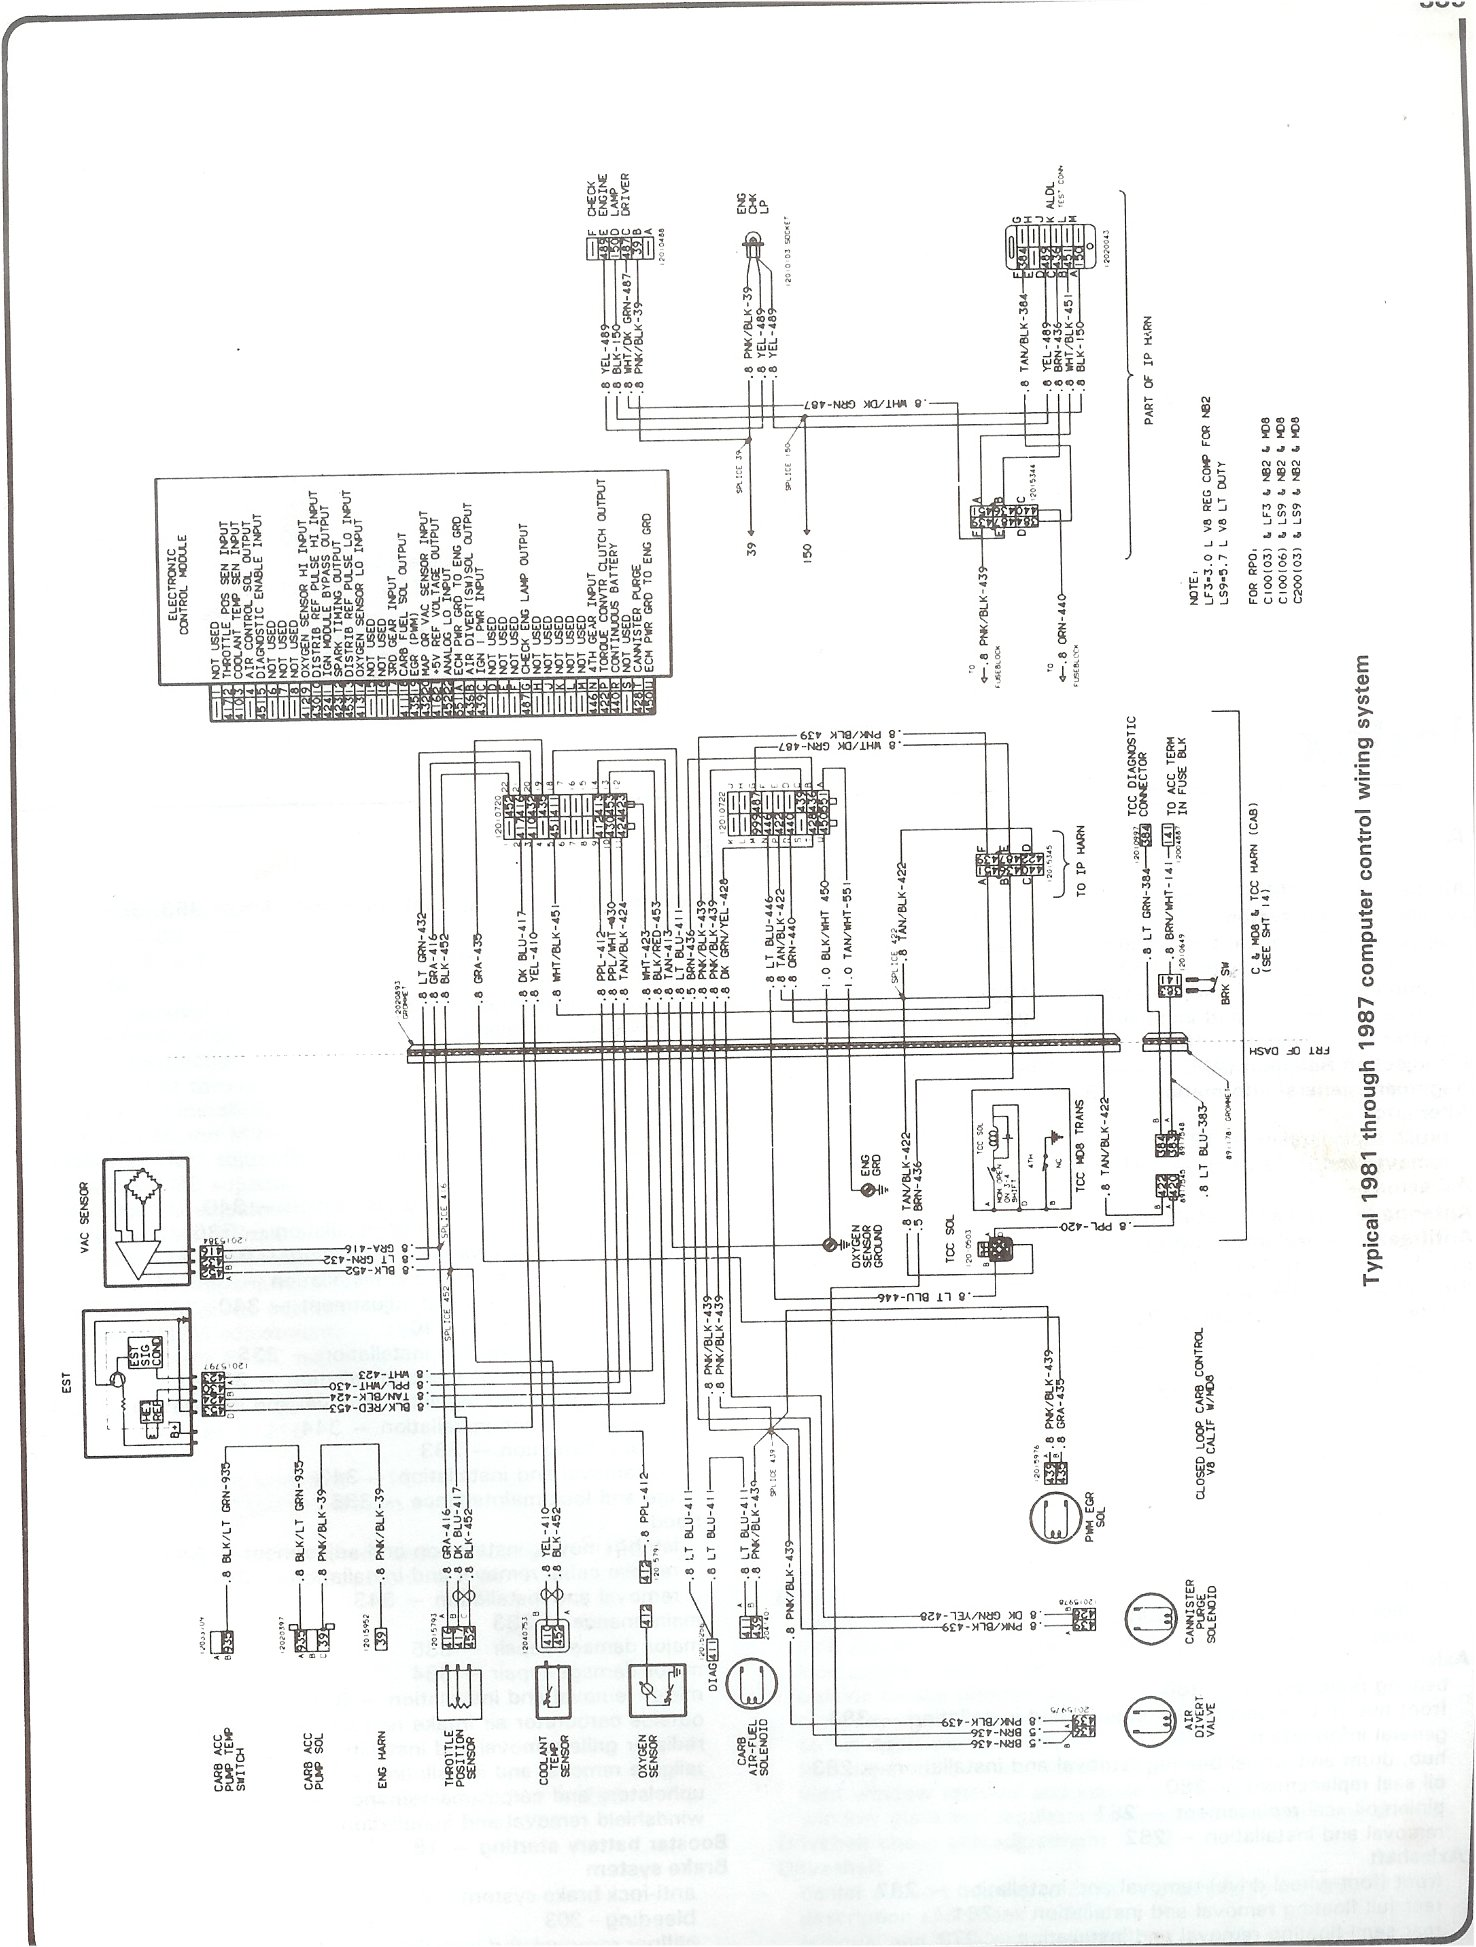 1979 Chevrolet Engine Harness Diagram Great Installation Of Wiring Ecotec Third Level Rh 16 5 15 Jacobwinterstein Com 2005 22